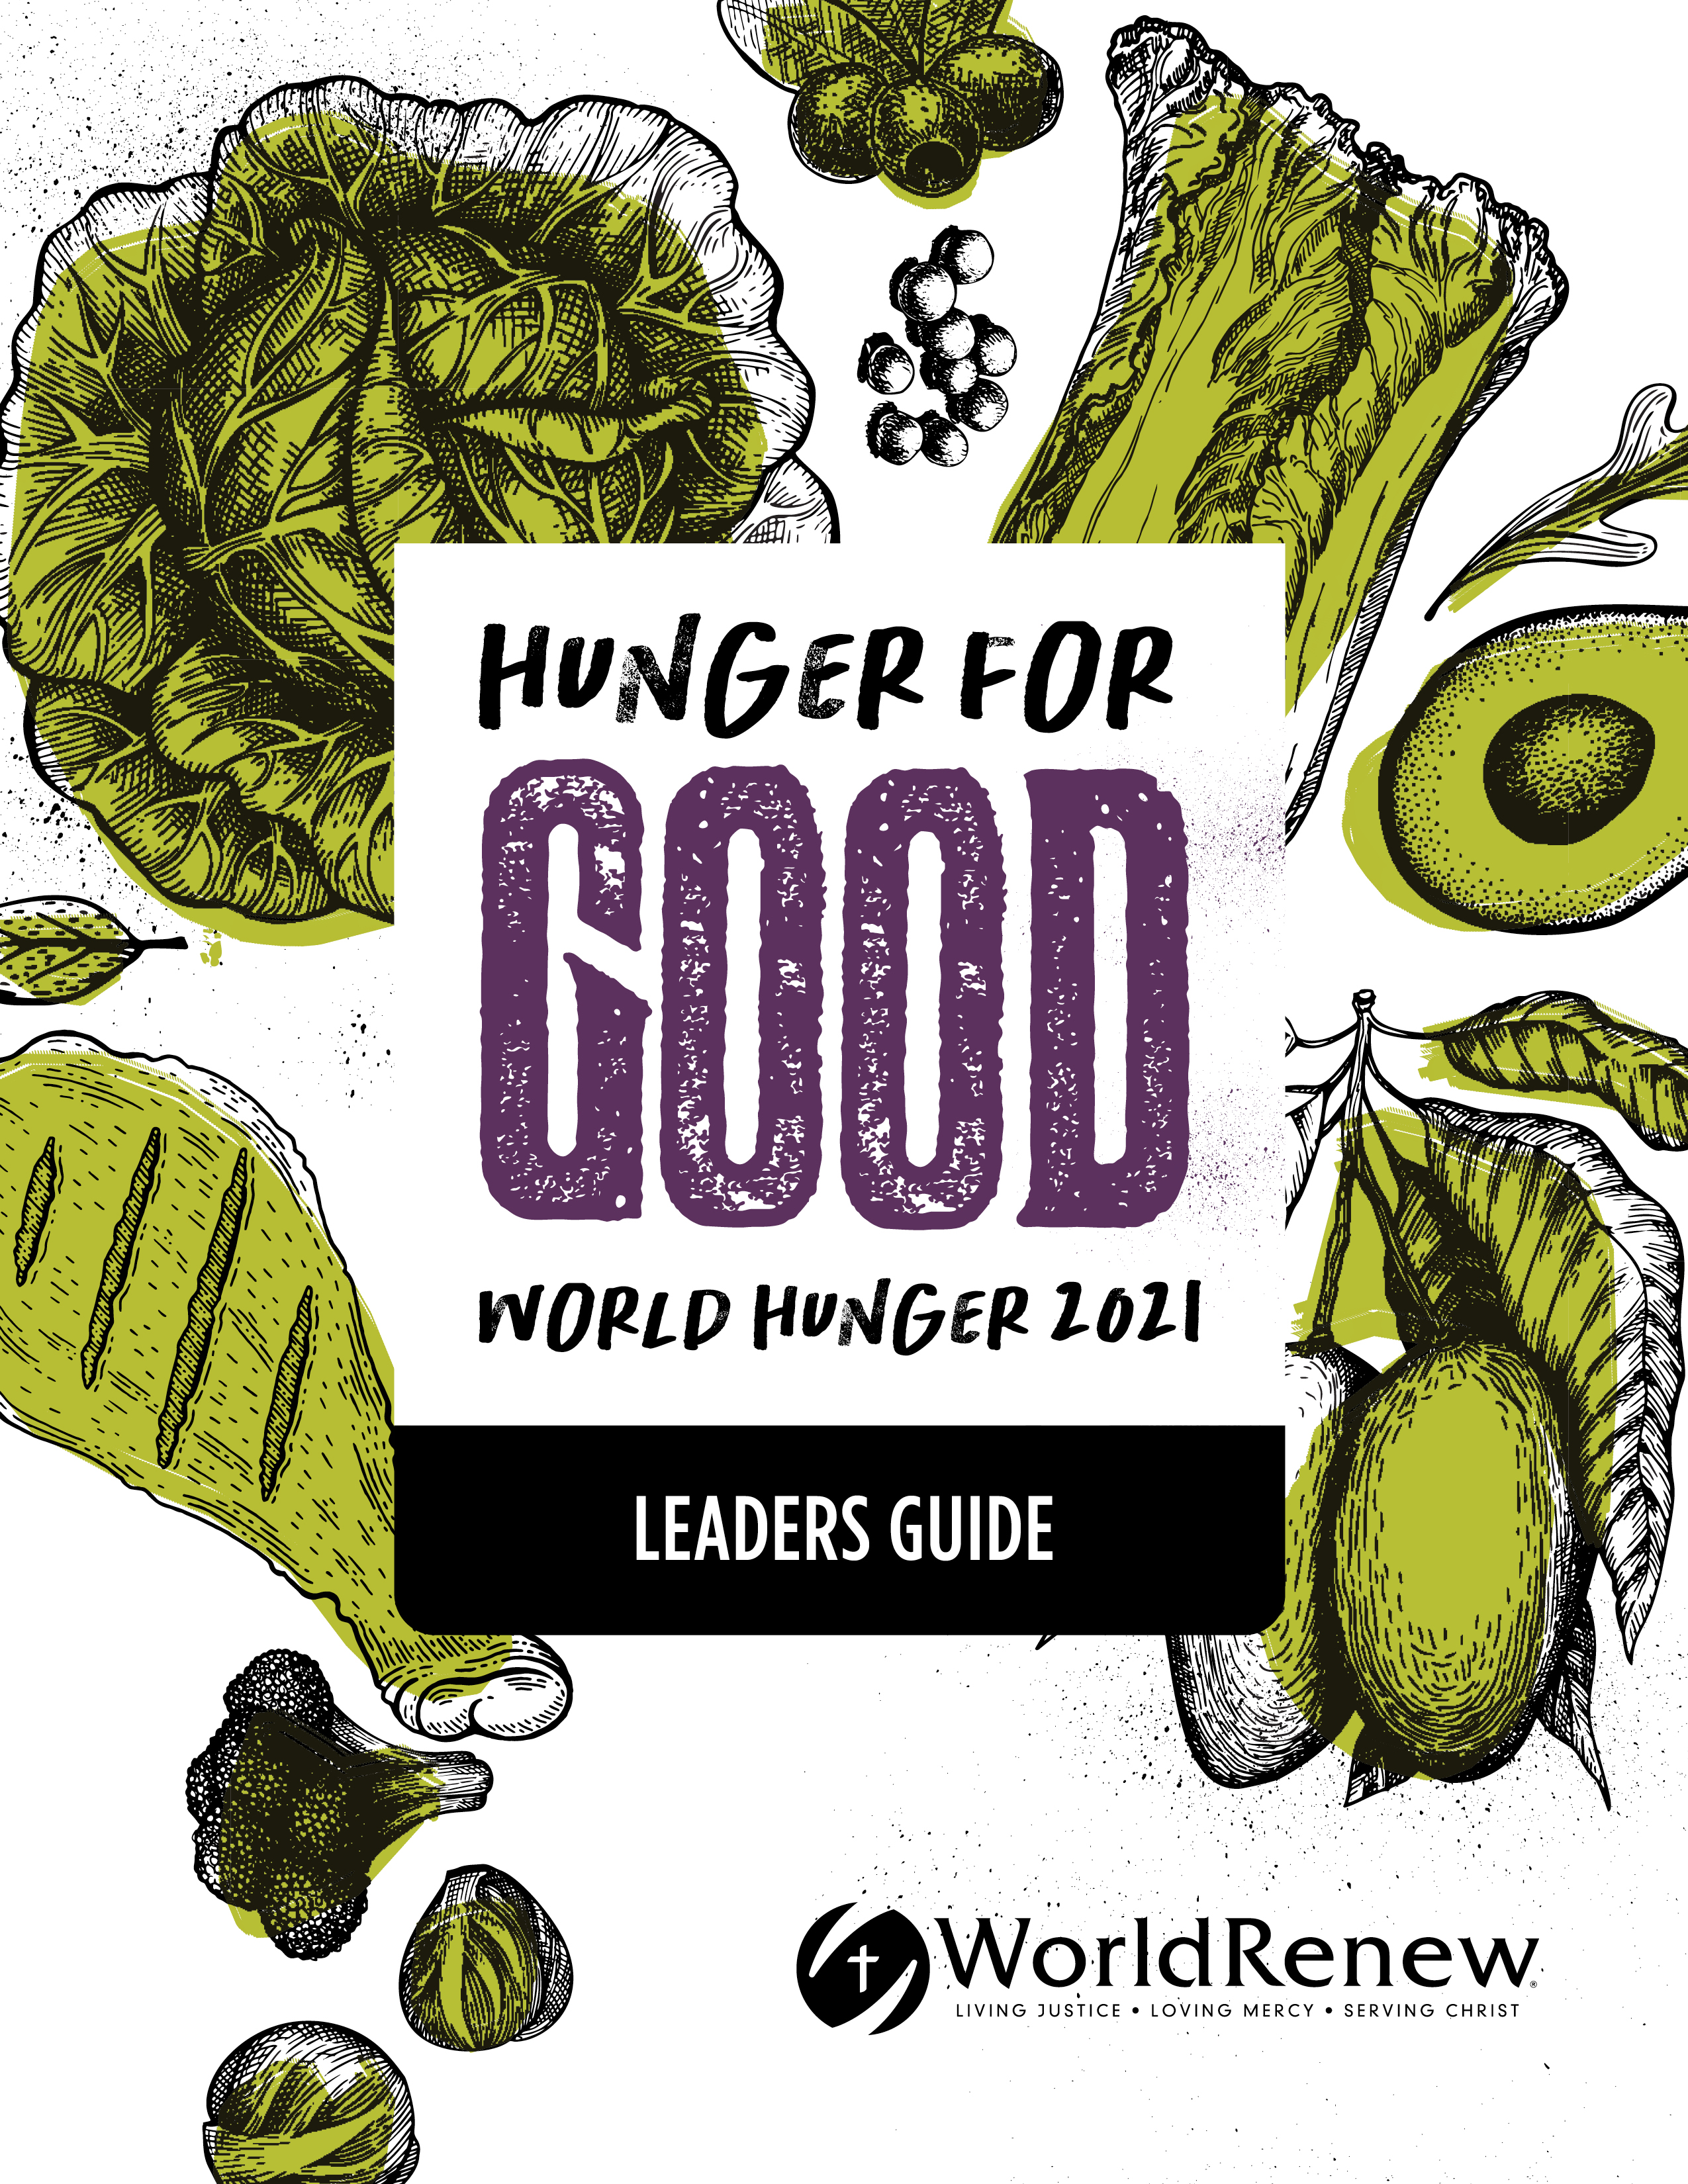 World Hunger Leader's Guide 2015-2016